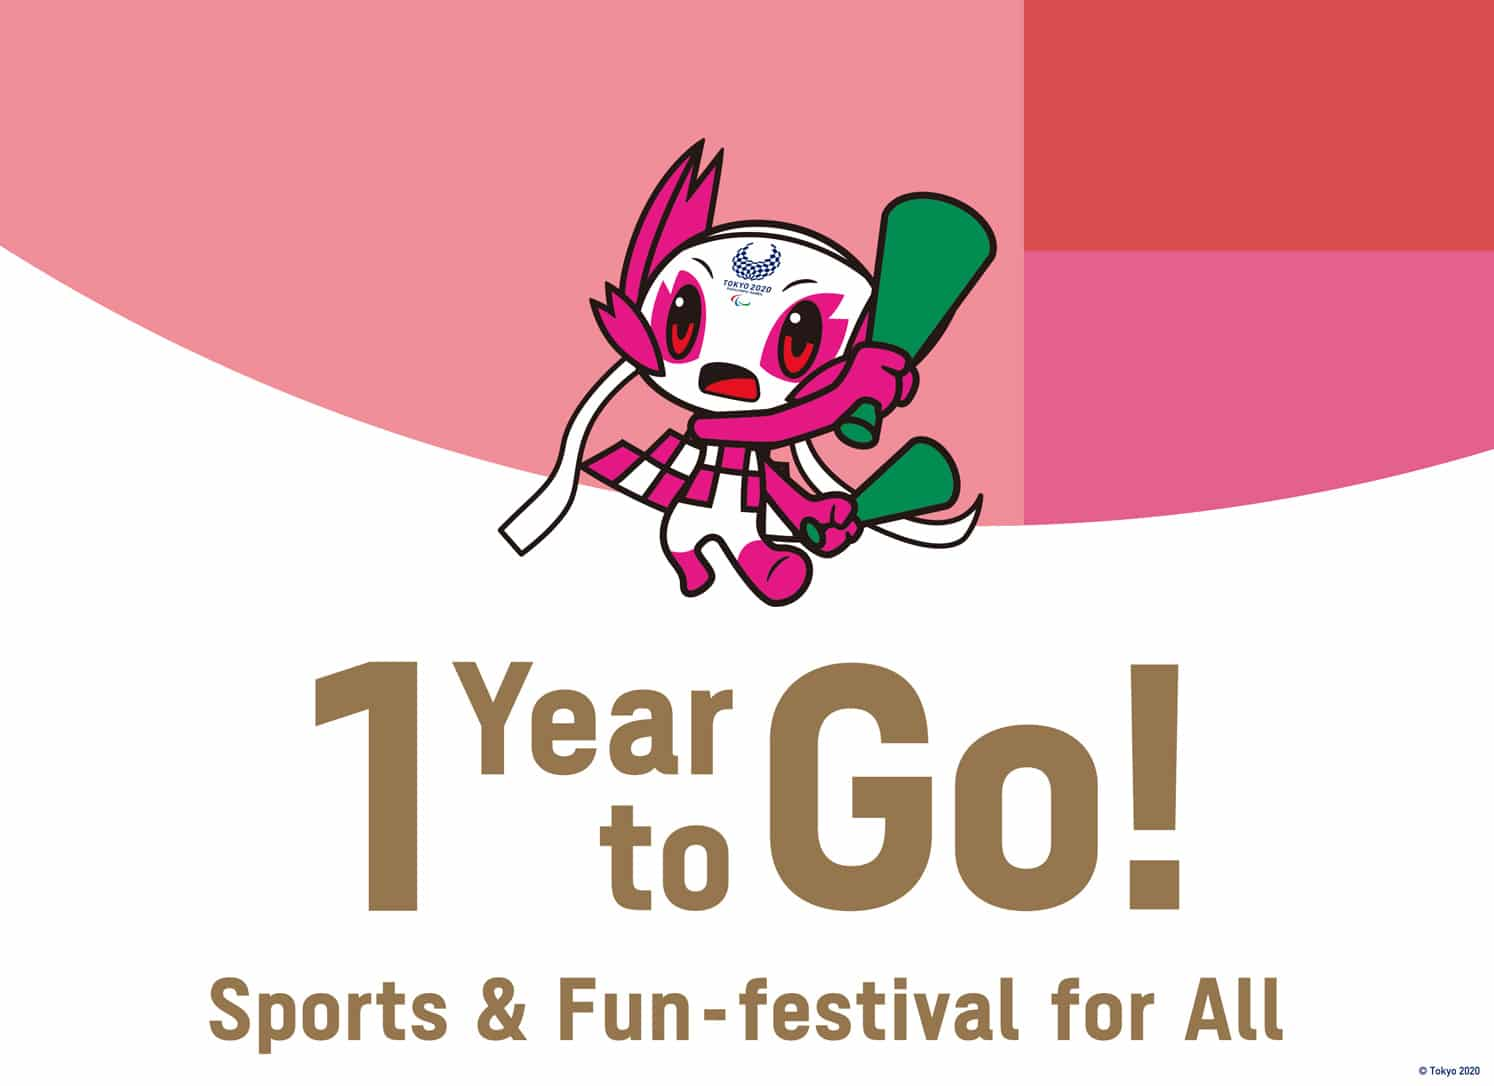 Tokyo 2020 1 Year to Go